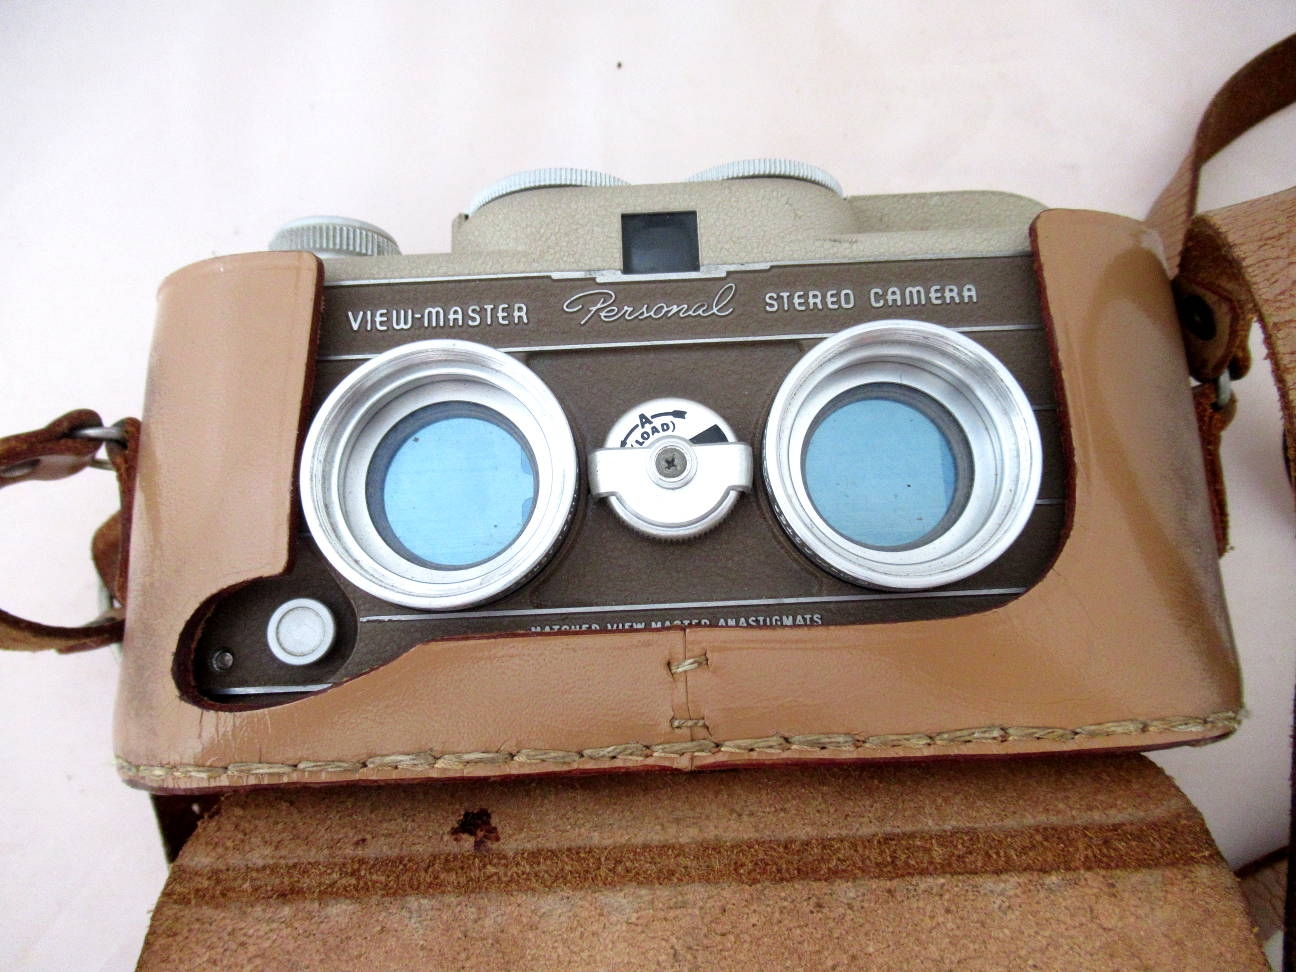 jpgodd/viewmaster_personel_stereo_IMG_0587.JPG